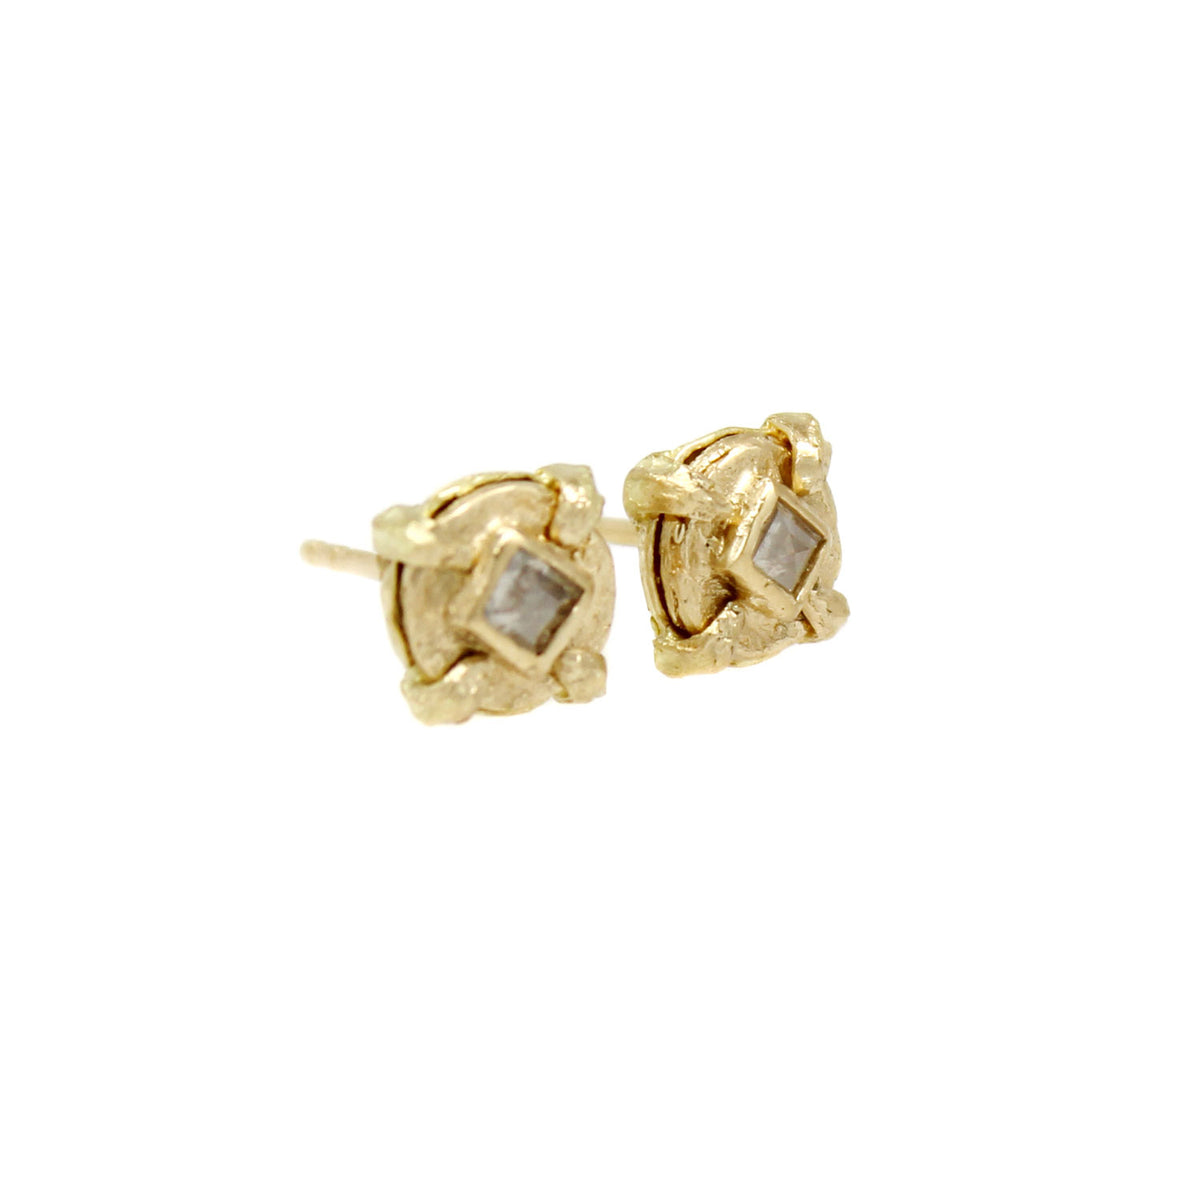 One-of-a-Kind Mini Square Diamond Studs - Solid 18K